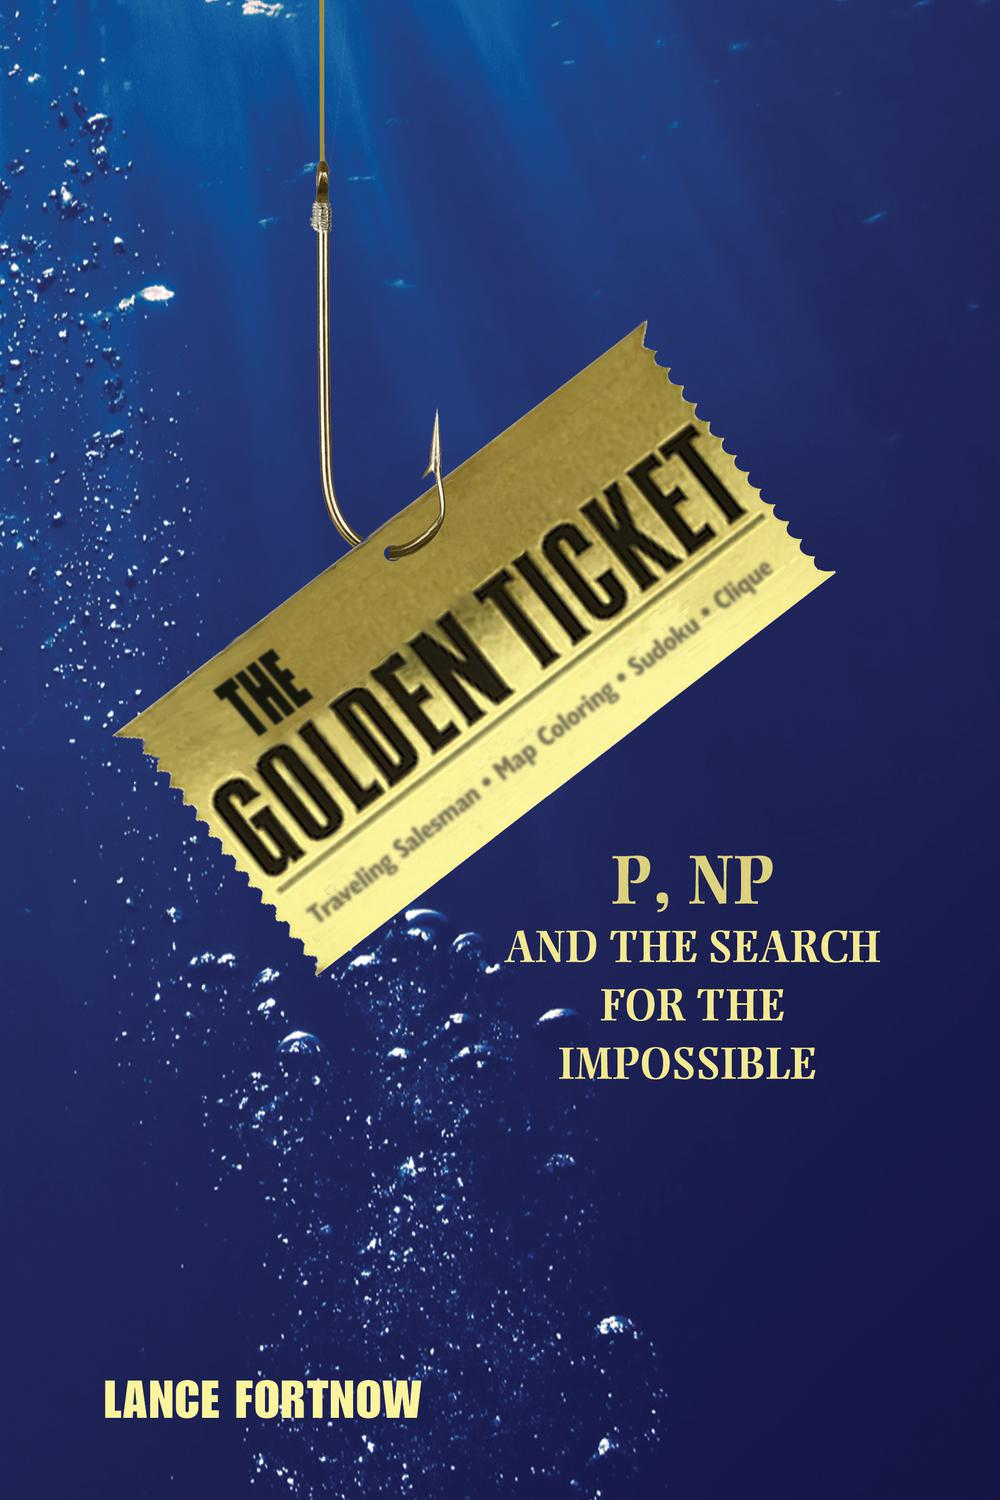 Download The Golden Ticket P Np And The Search For The Impossible By Lance Fortnow